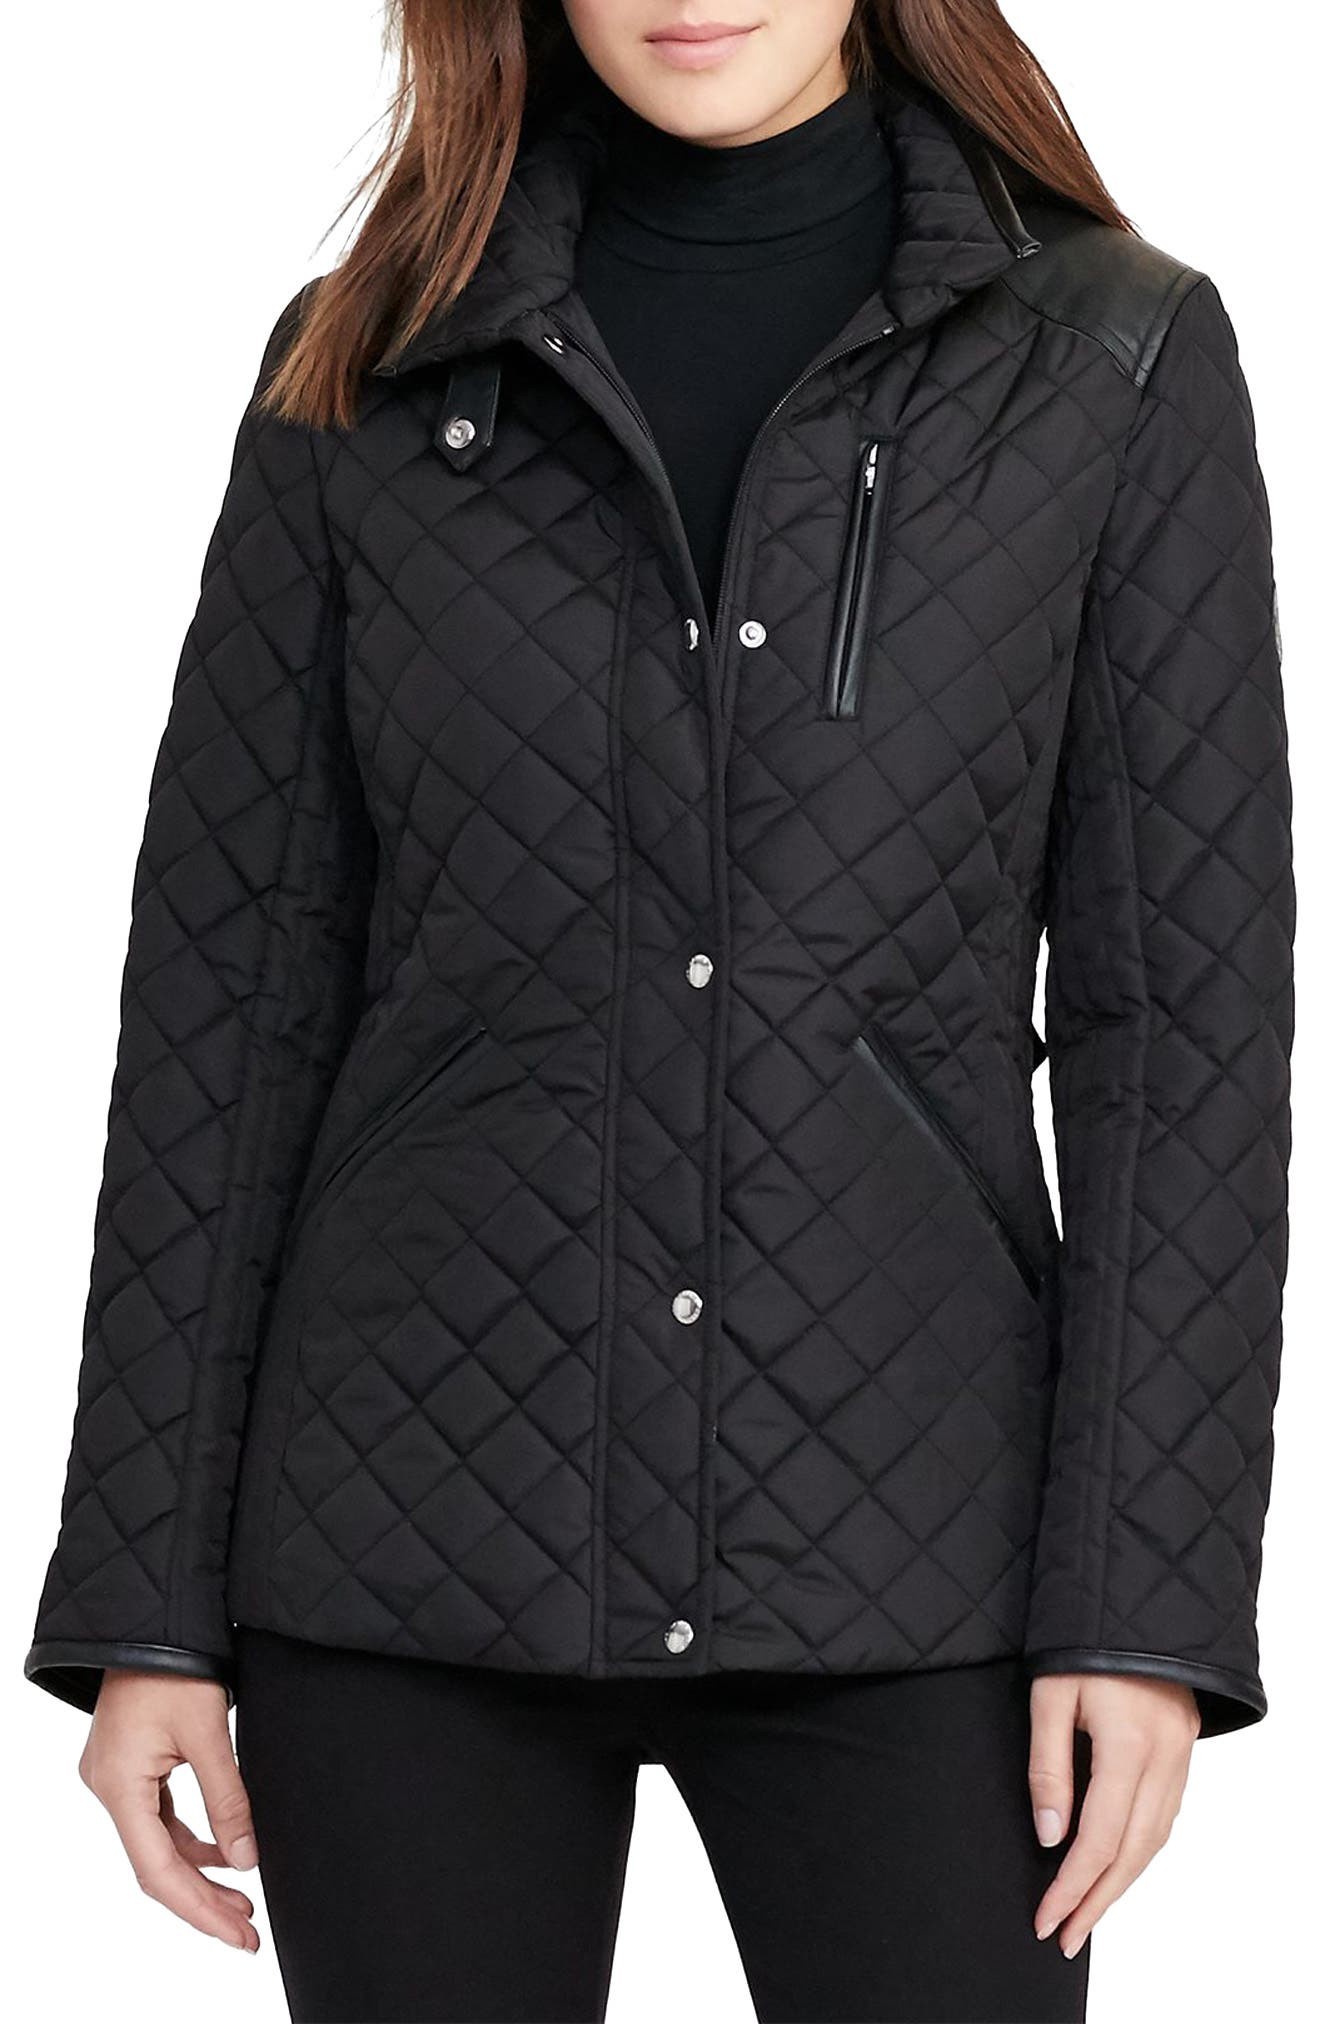 Main Image - Lauren Ralph Lauren Faux Leather Trim Quilted Jacket